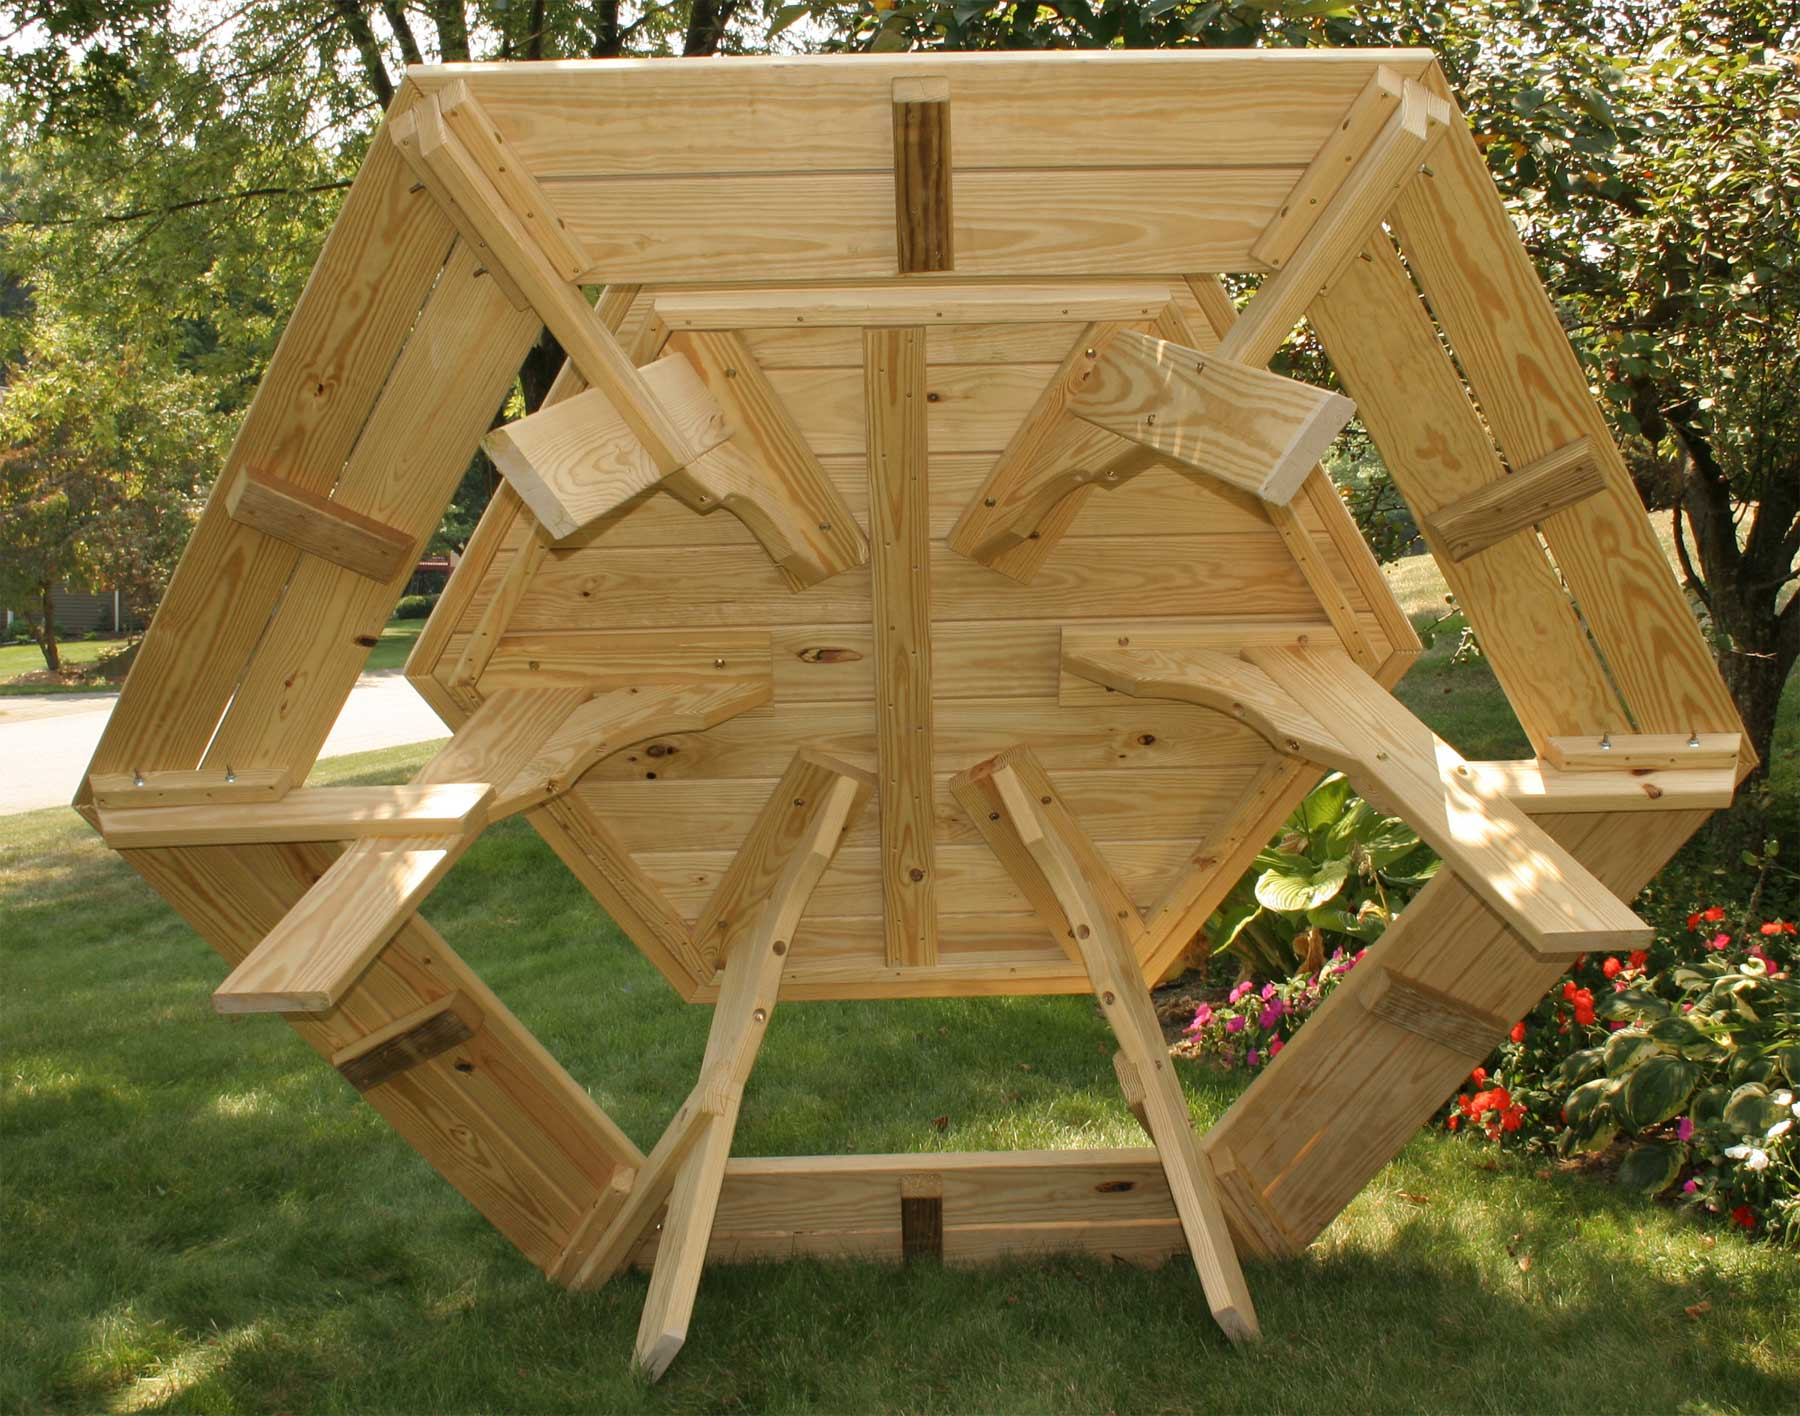 Treated Pine Hexagon Picnic Table - Treated lumber picnic table